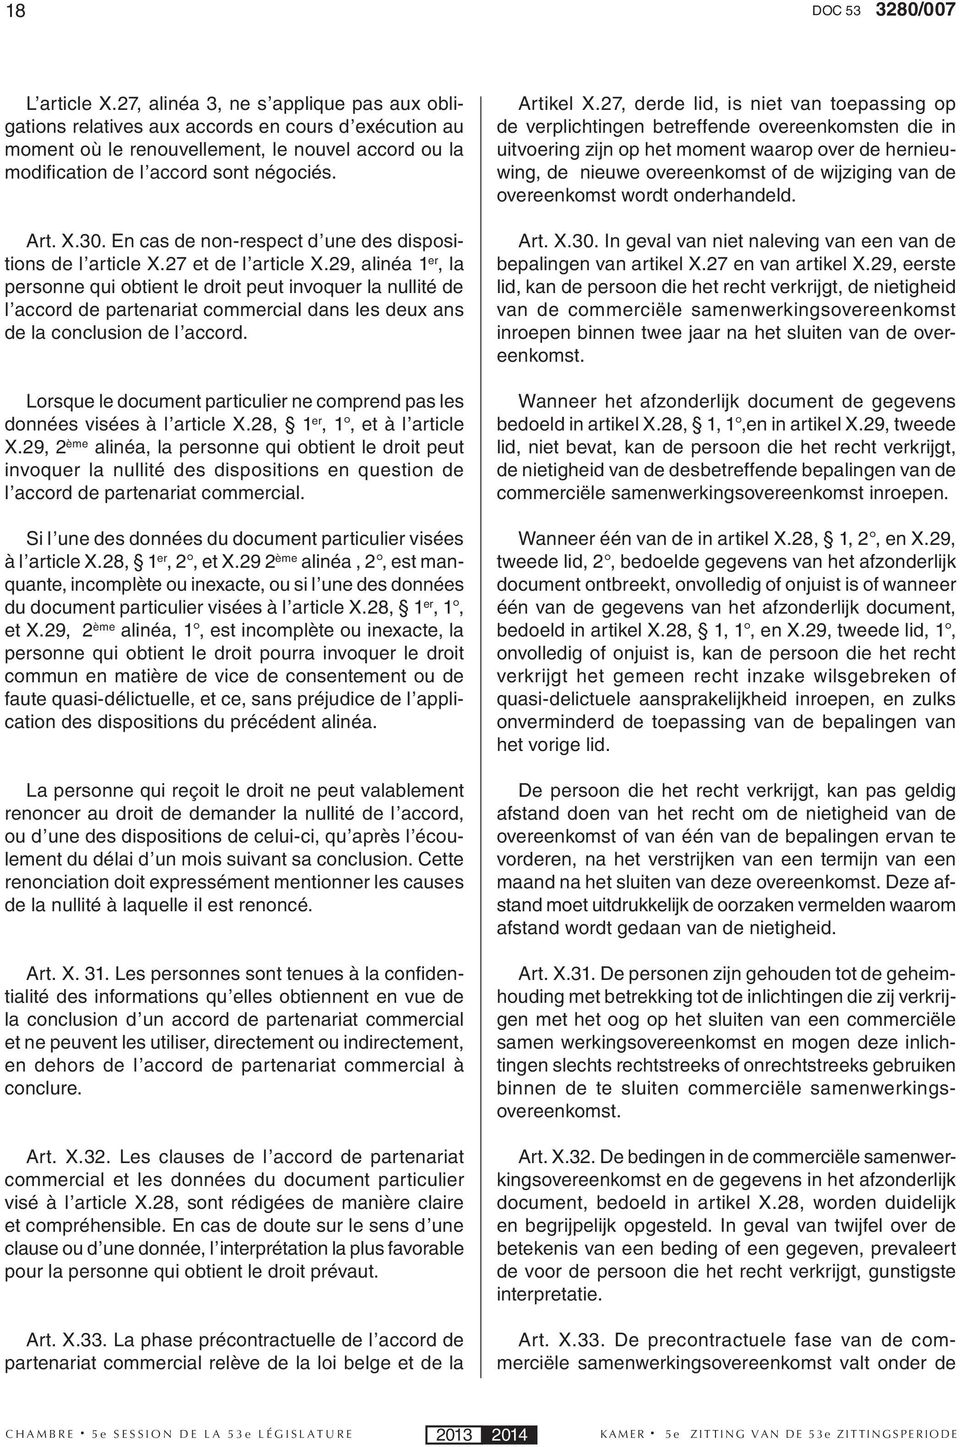 En cas de non-respect d une des dispositions de l article X.27 et de l article X.